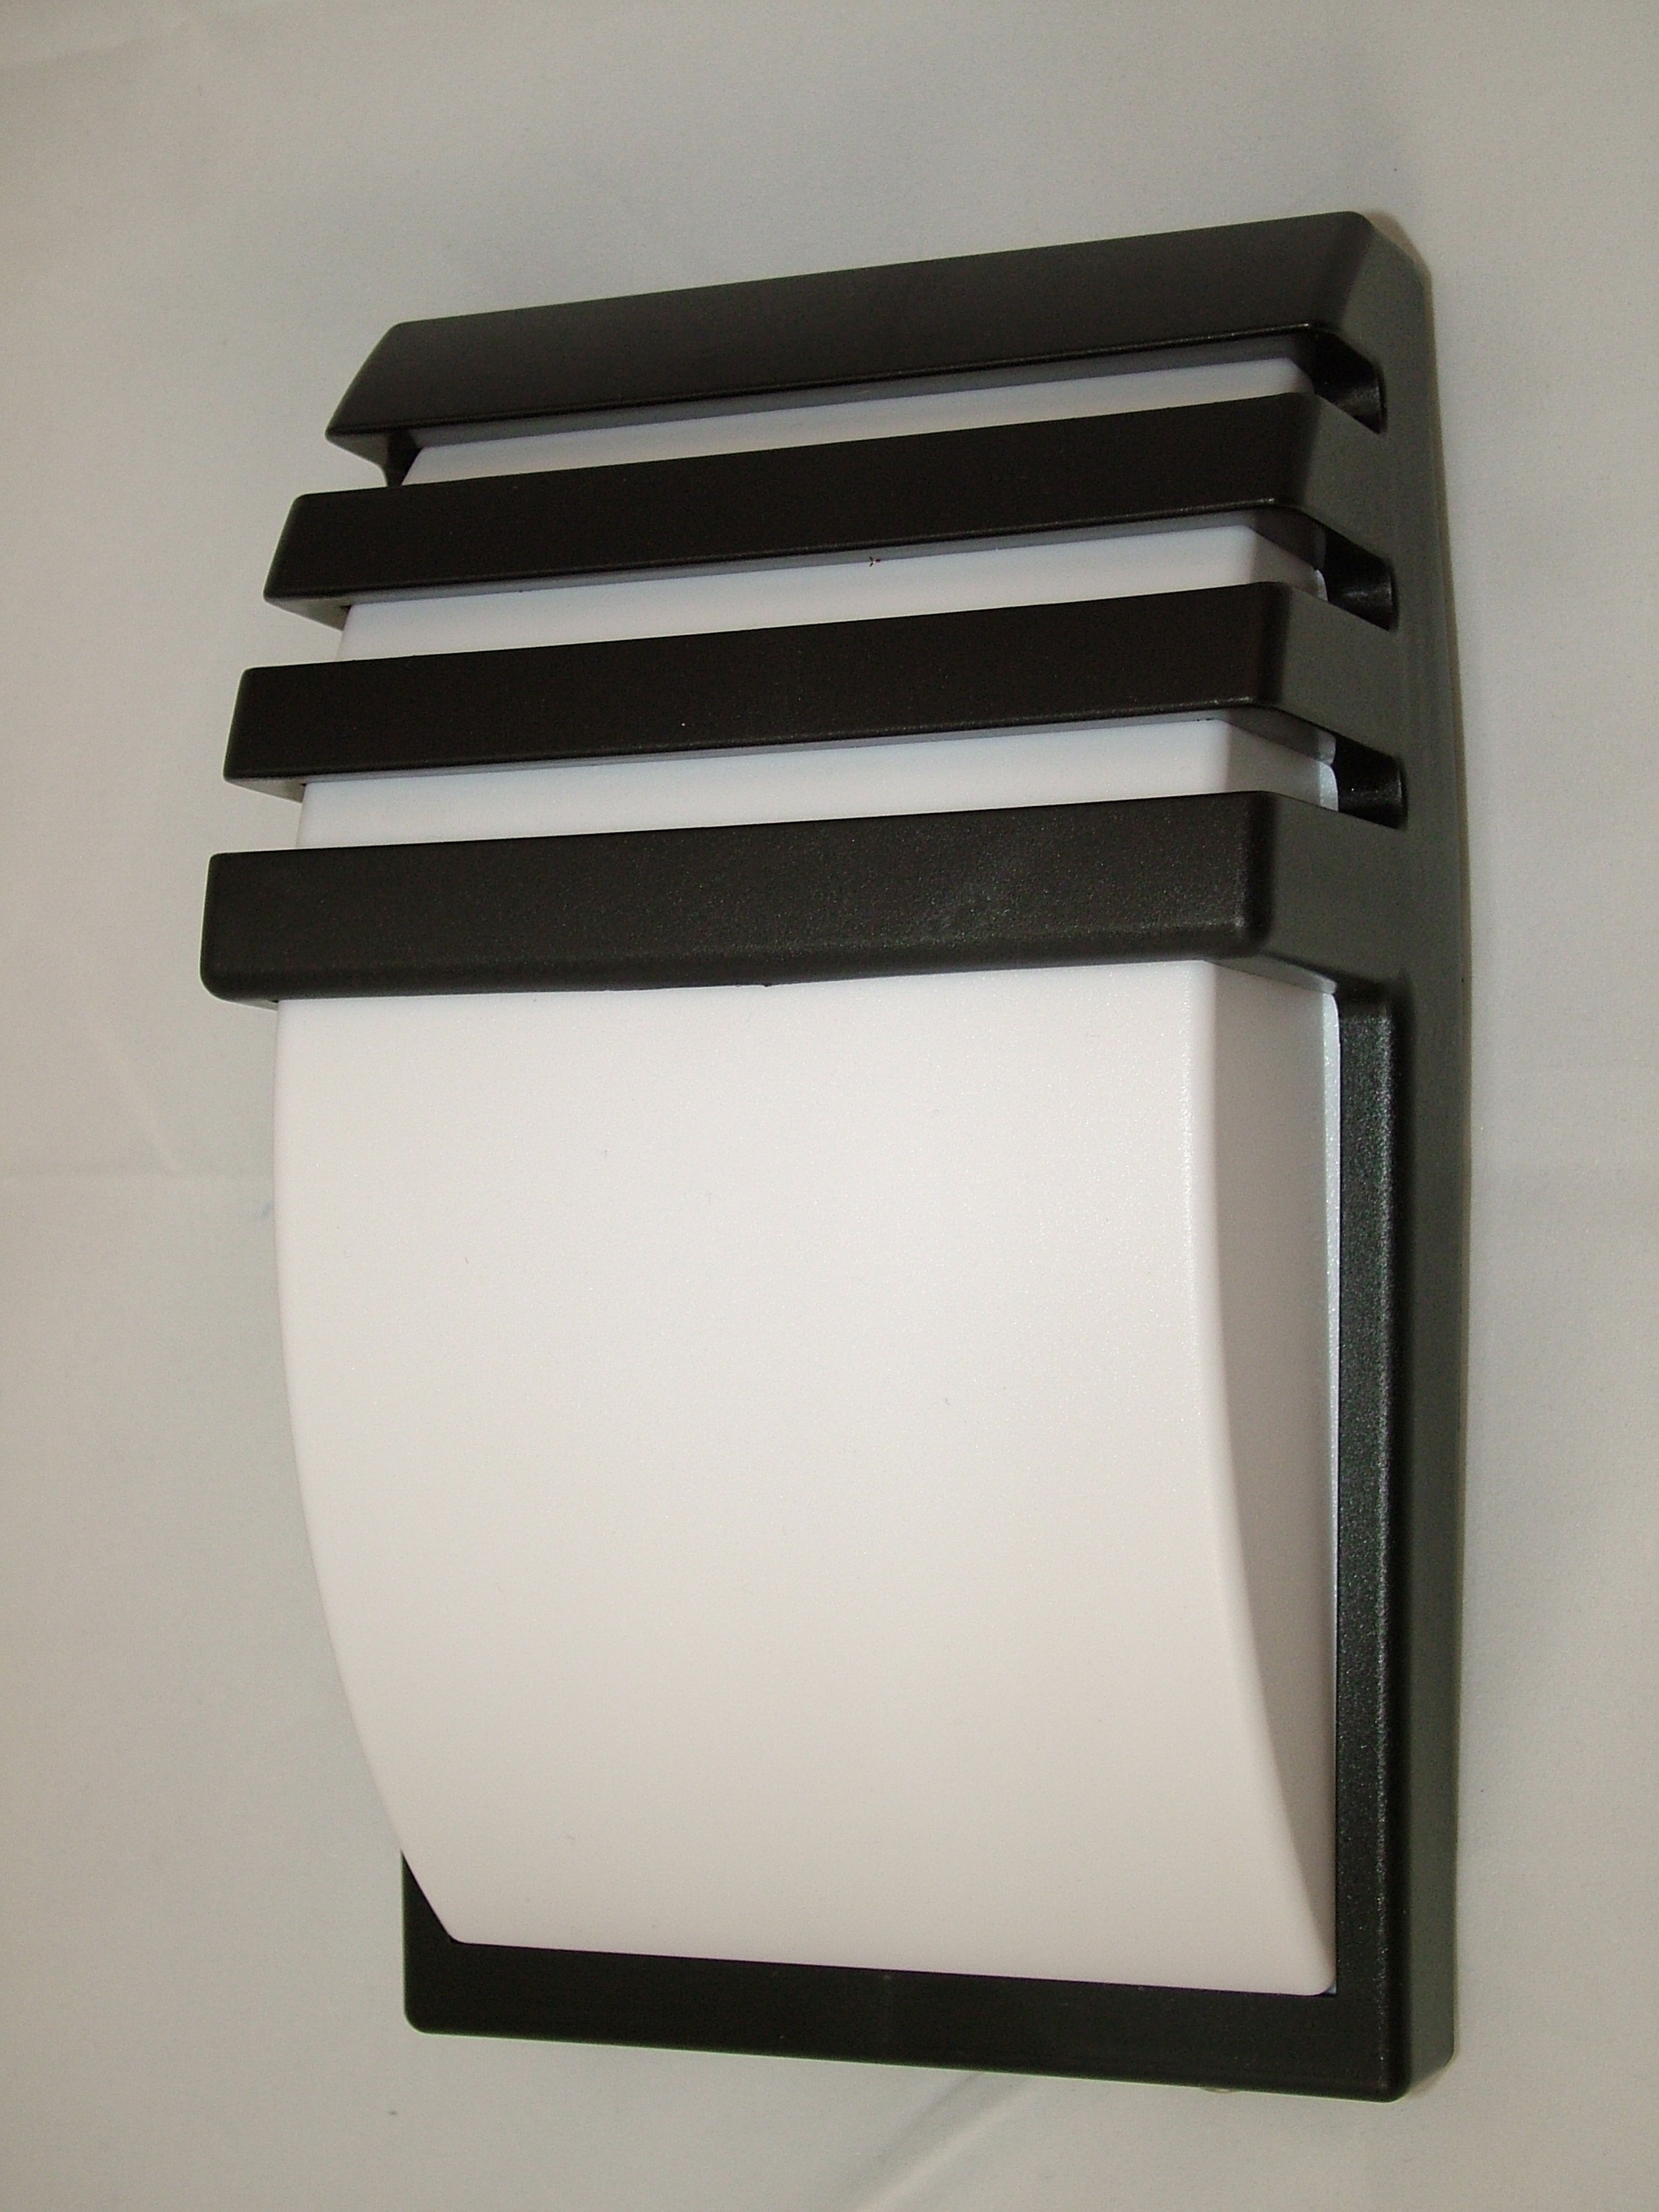 Large Outdoor Modern Wall Mounted Lighting Fixtures With Black Within Favorite Outdoor Wall Hung Lights (View 6 of 20)